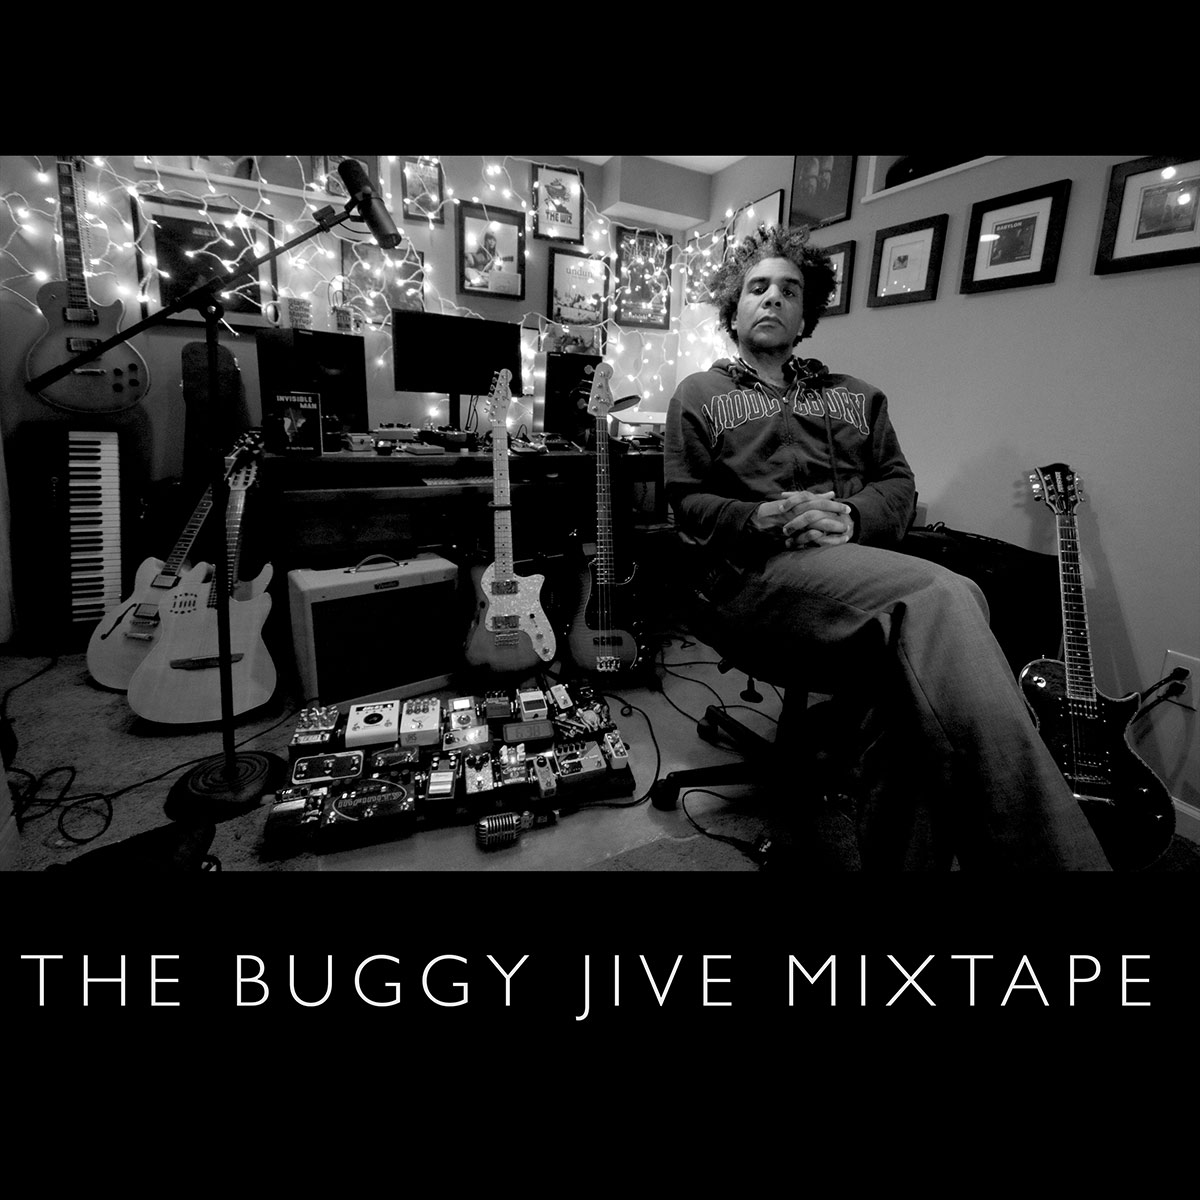 The Buggy Jive Mixtape